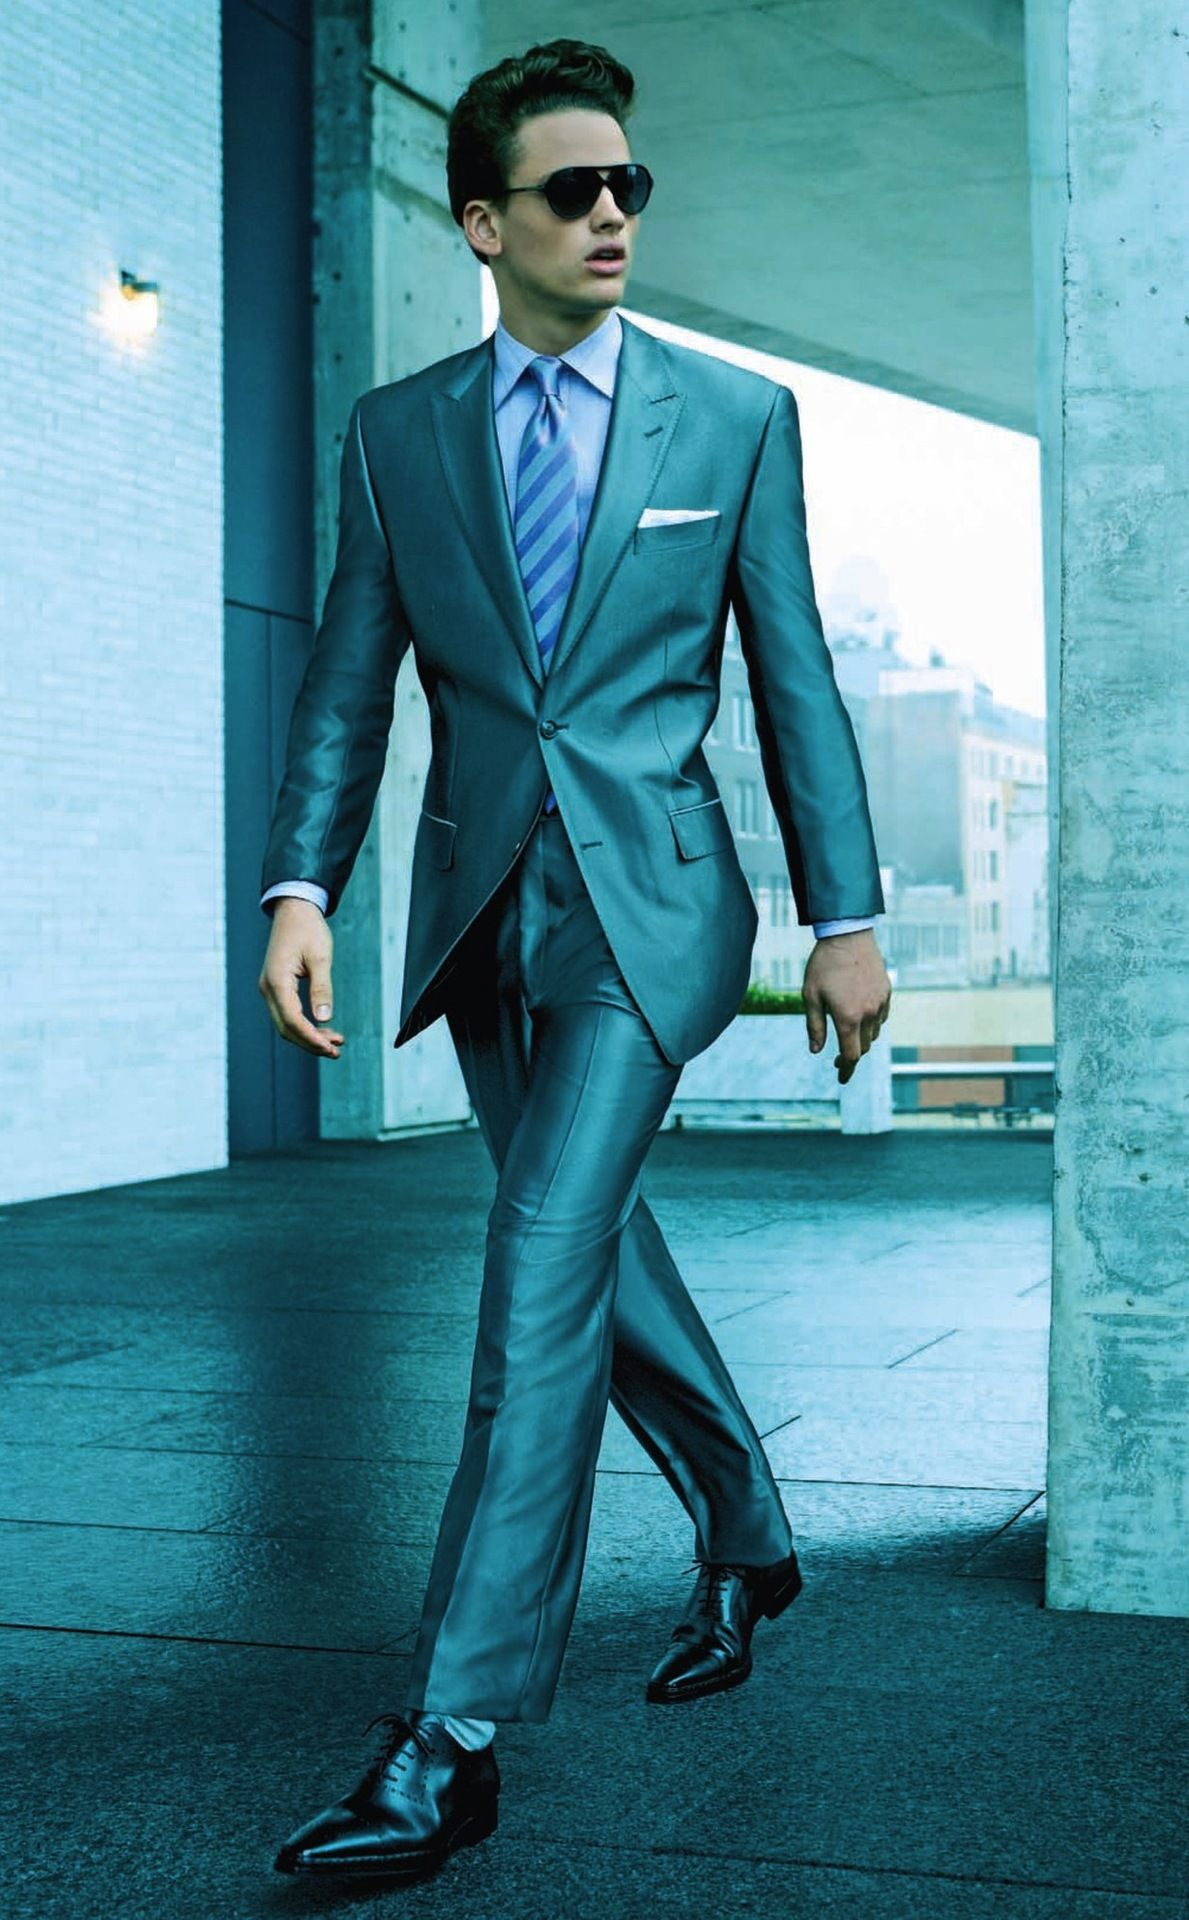 efac1b877bc681 Shiny suits can be cool. | Authentic Chic | Mens fashion:__cat__ ...